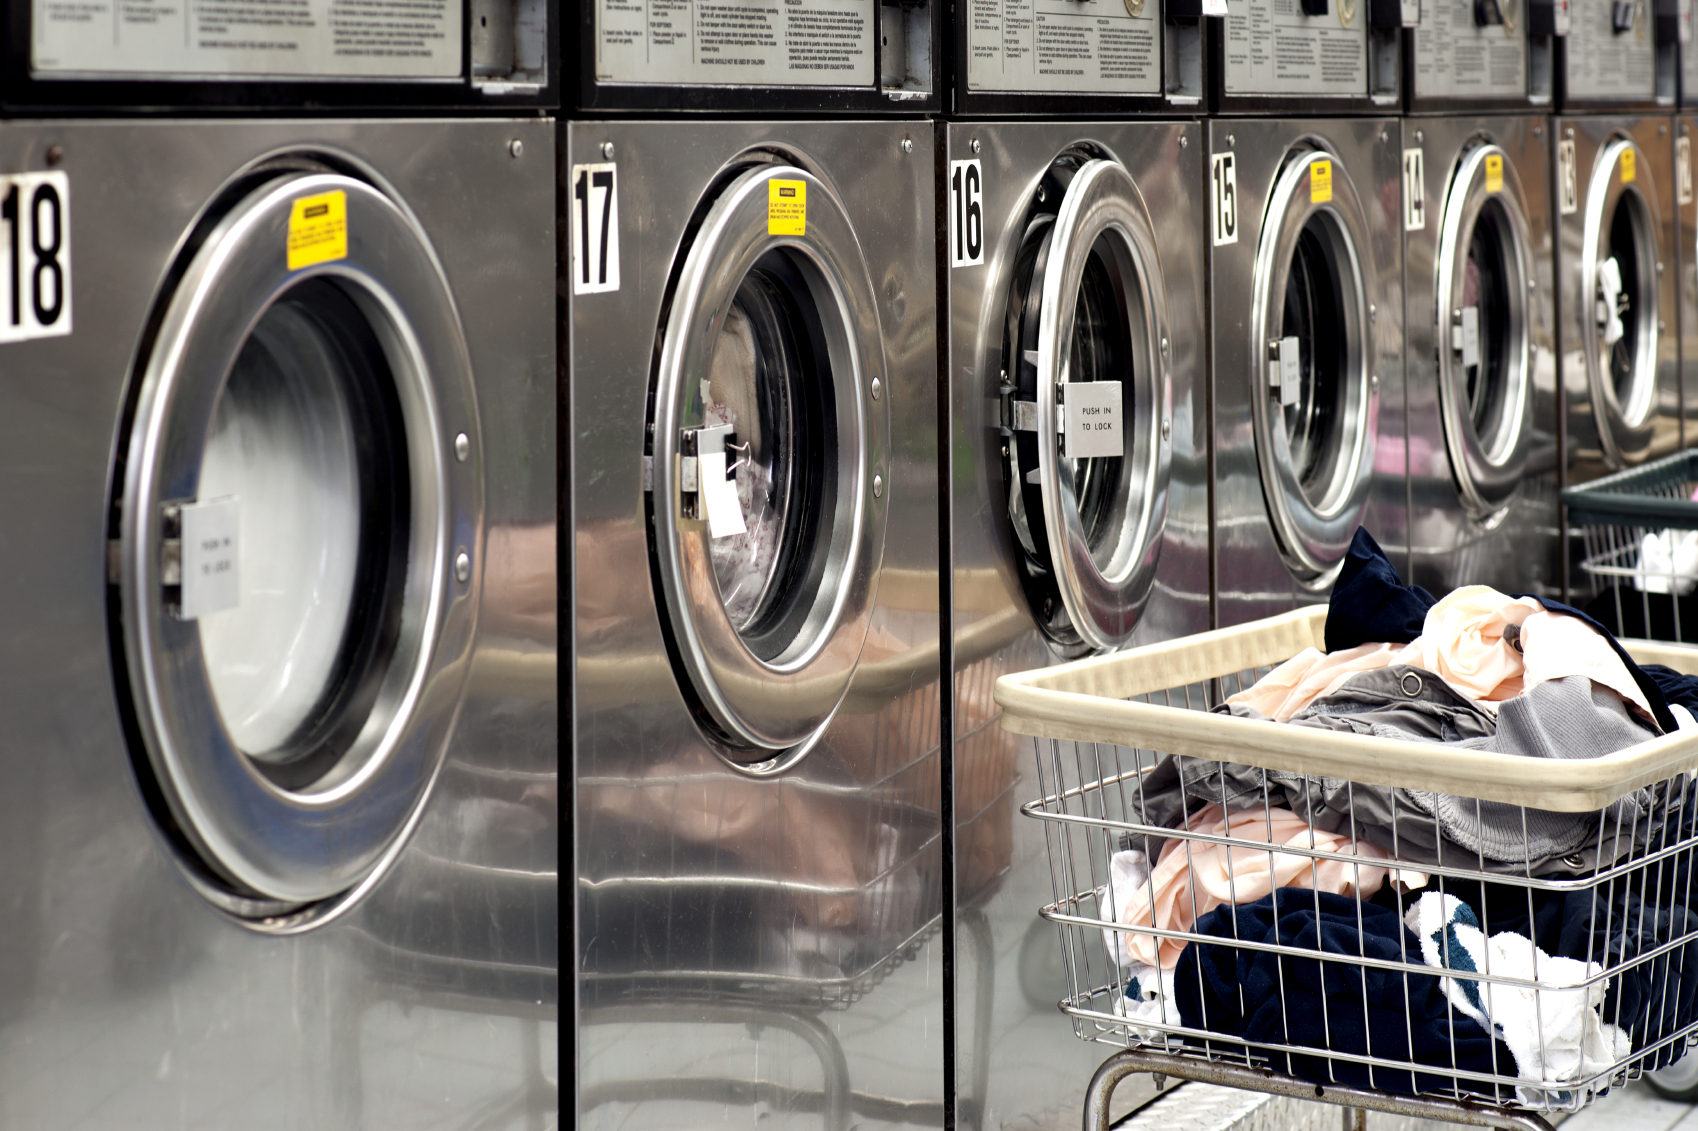 Buying Washing Machine Vs Laundromat